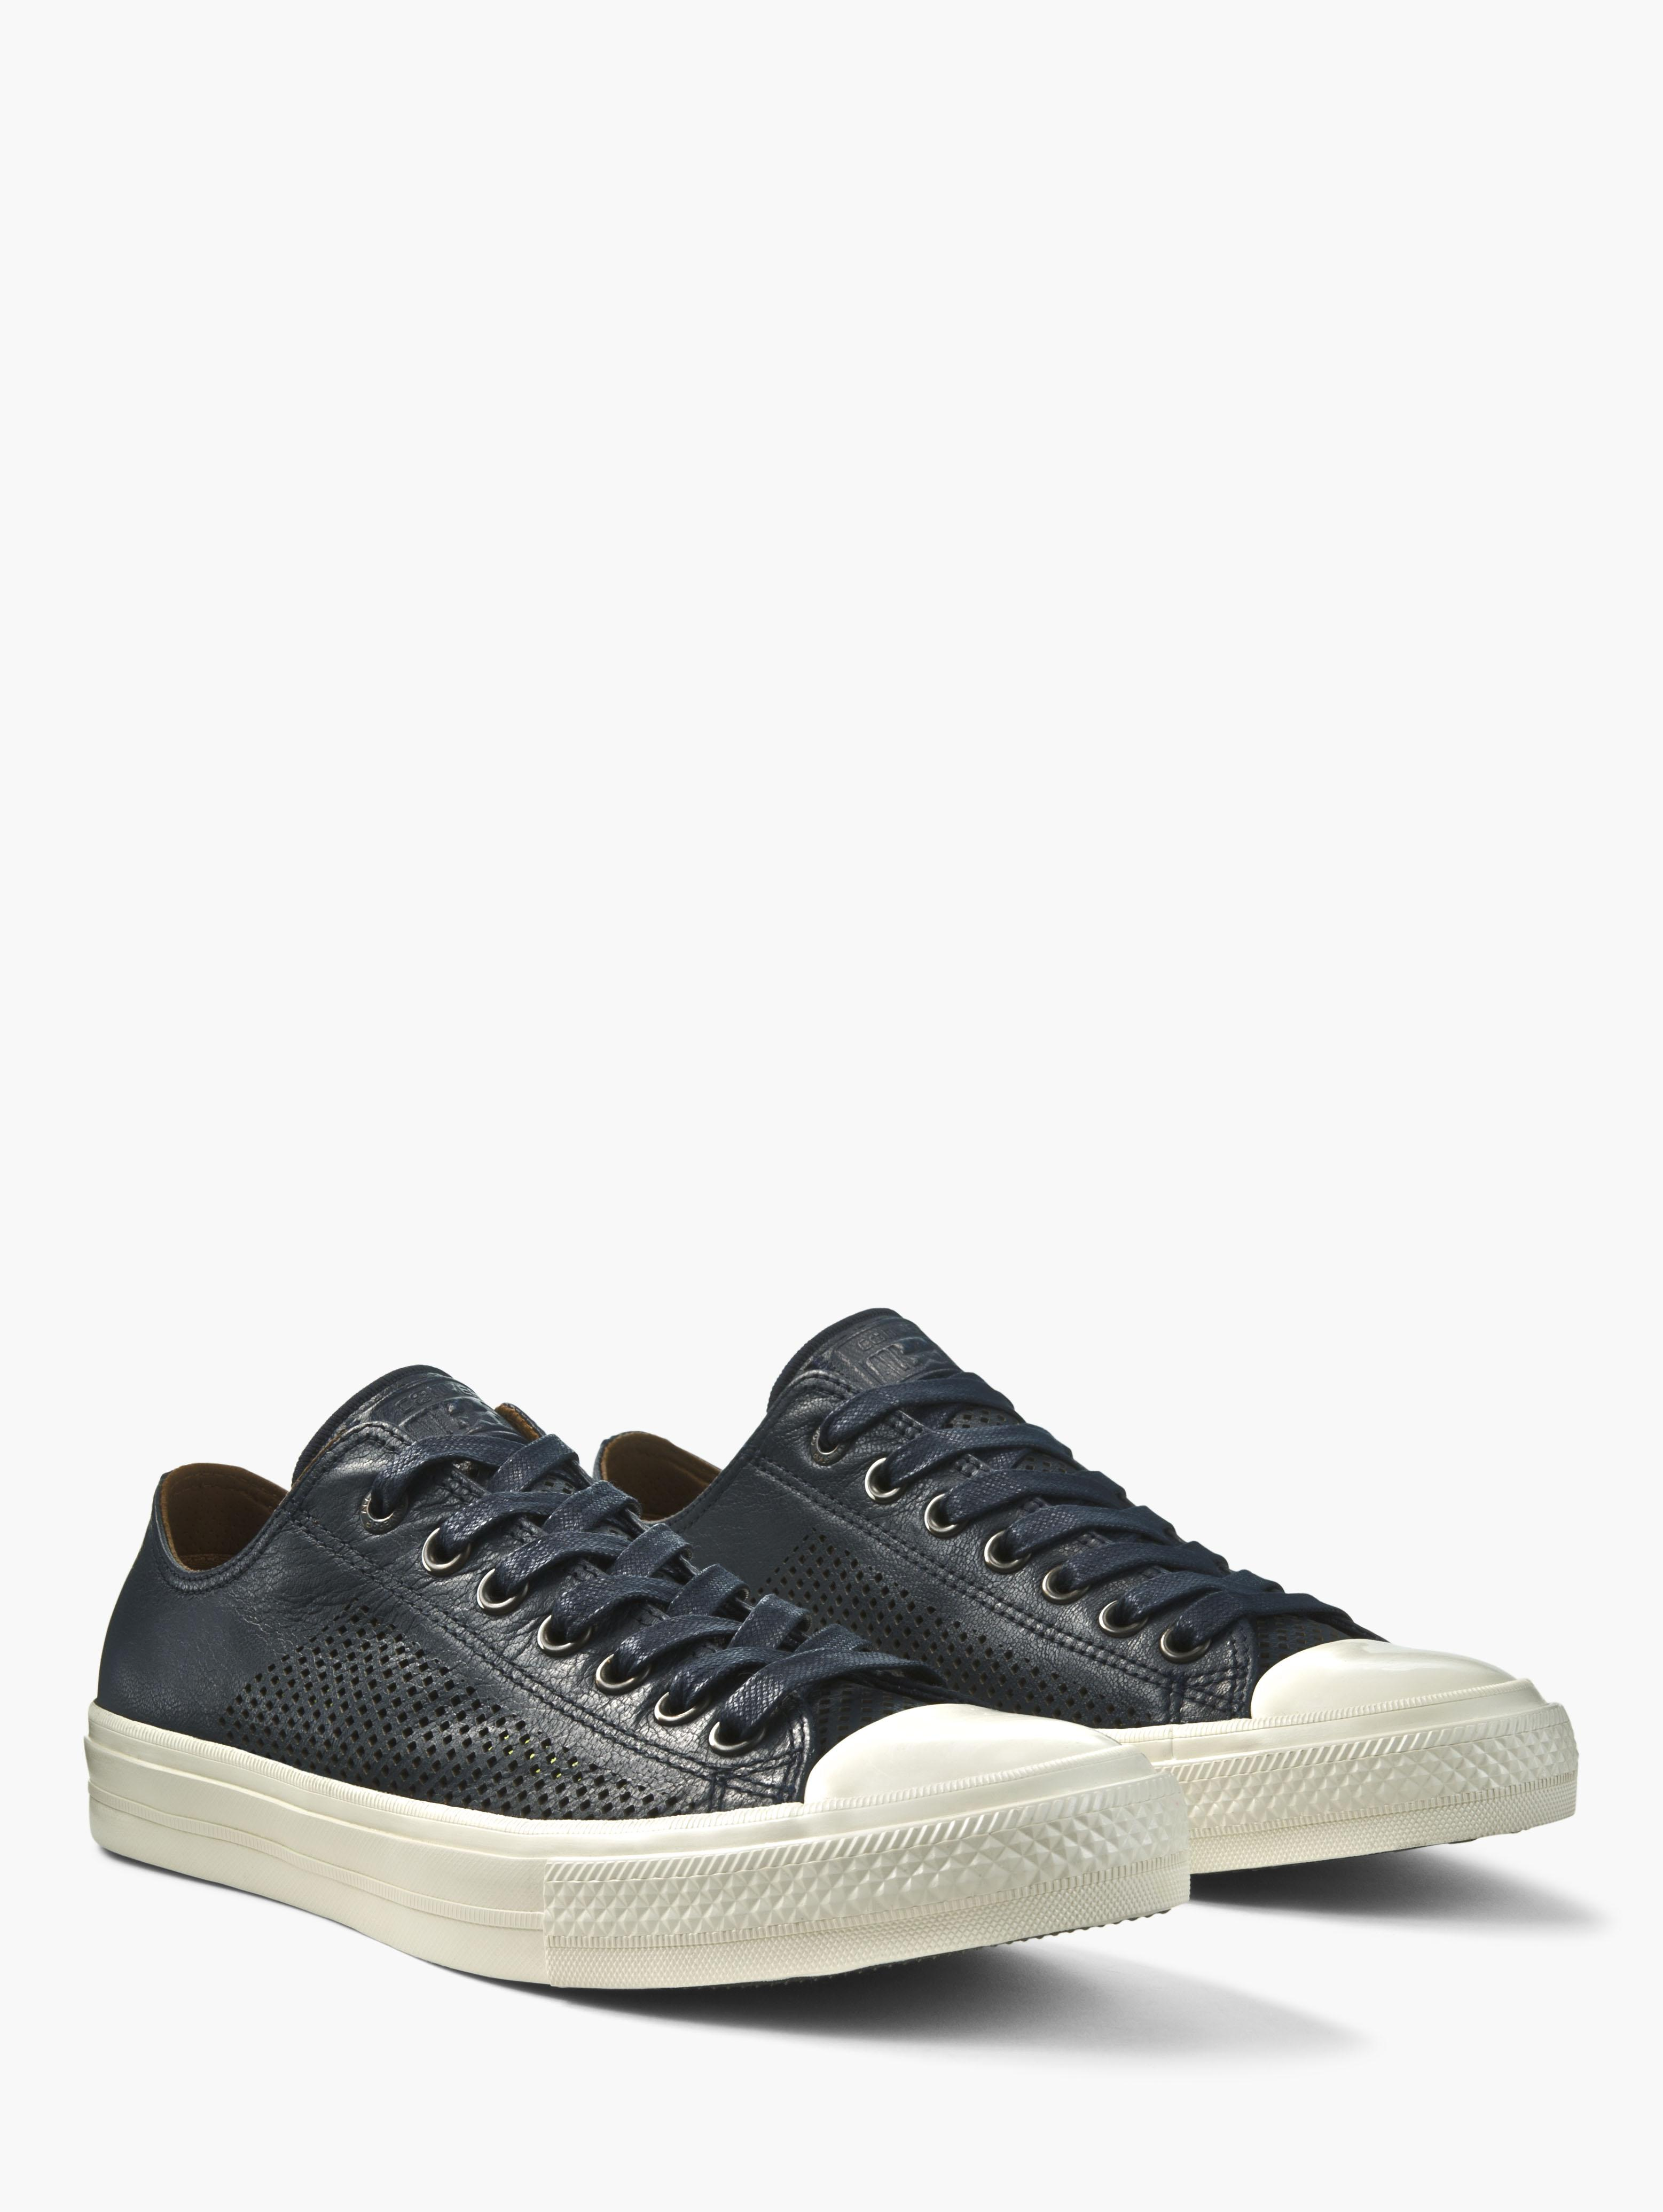 Chuck II Perforated Leather Low Top